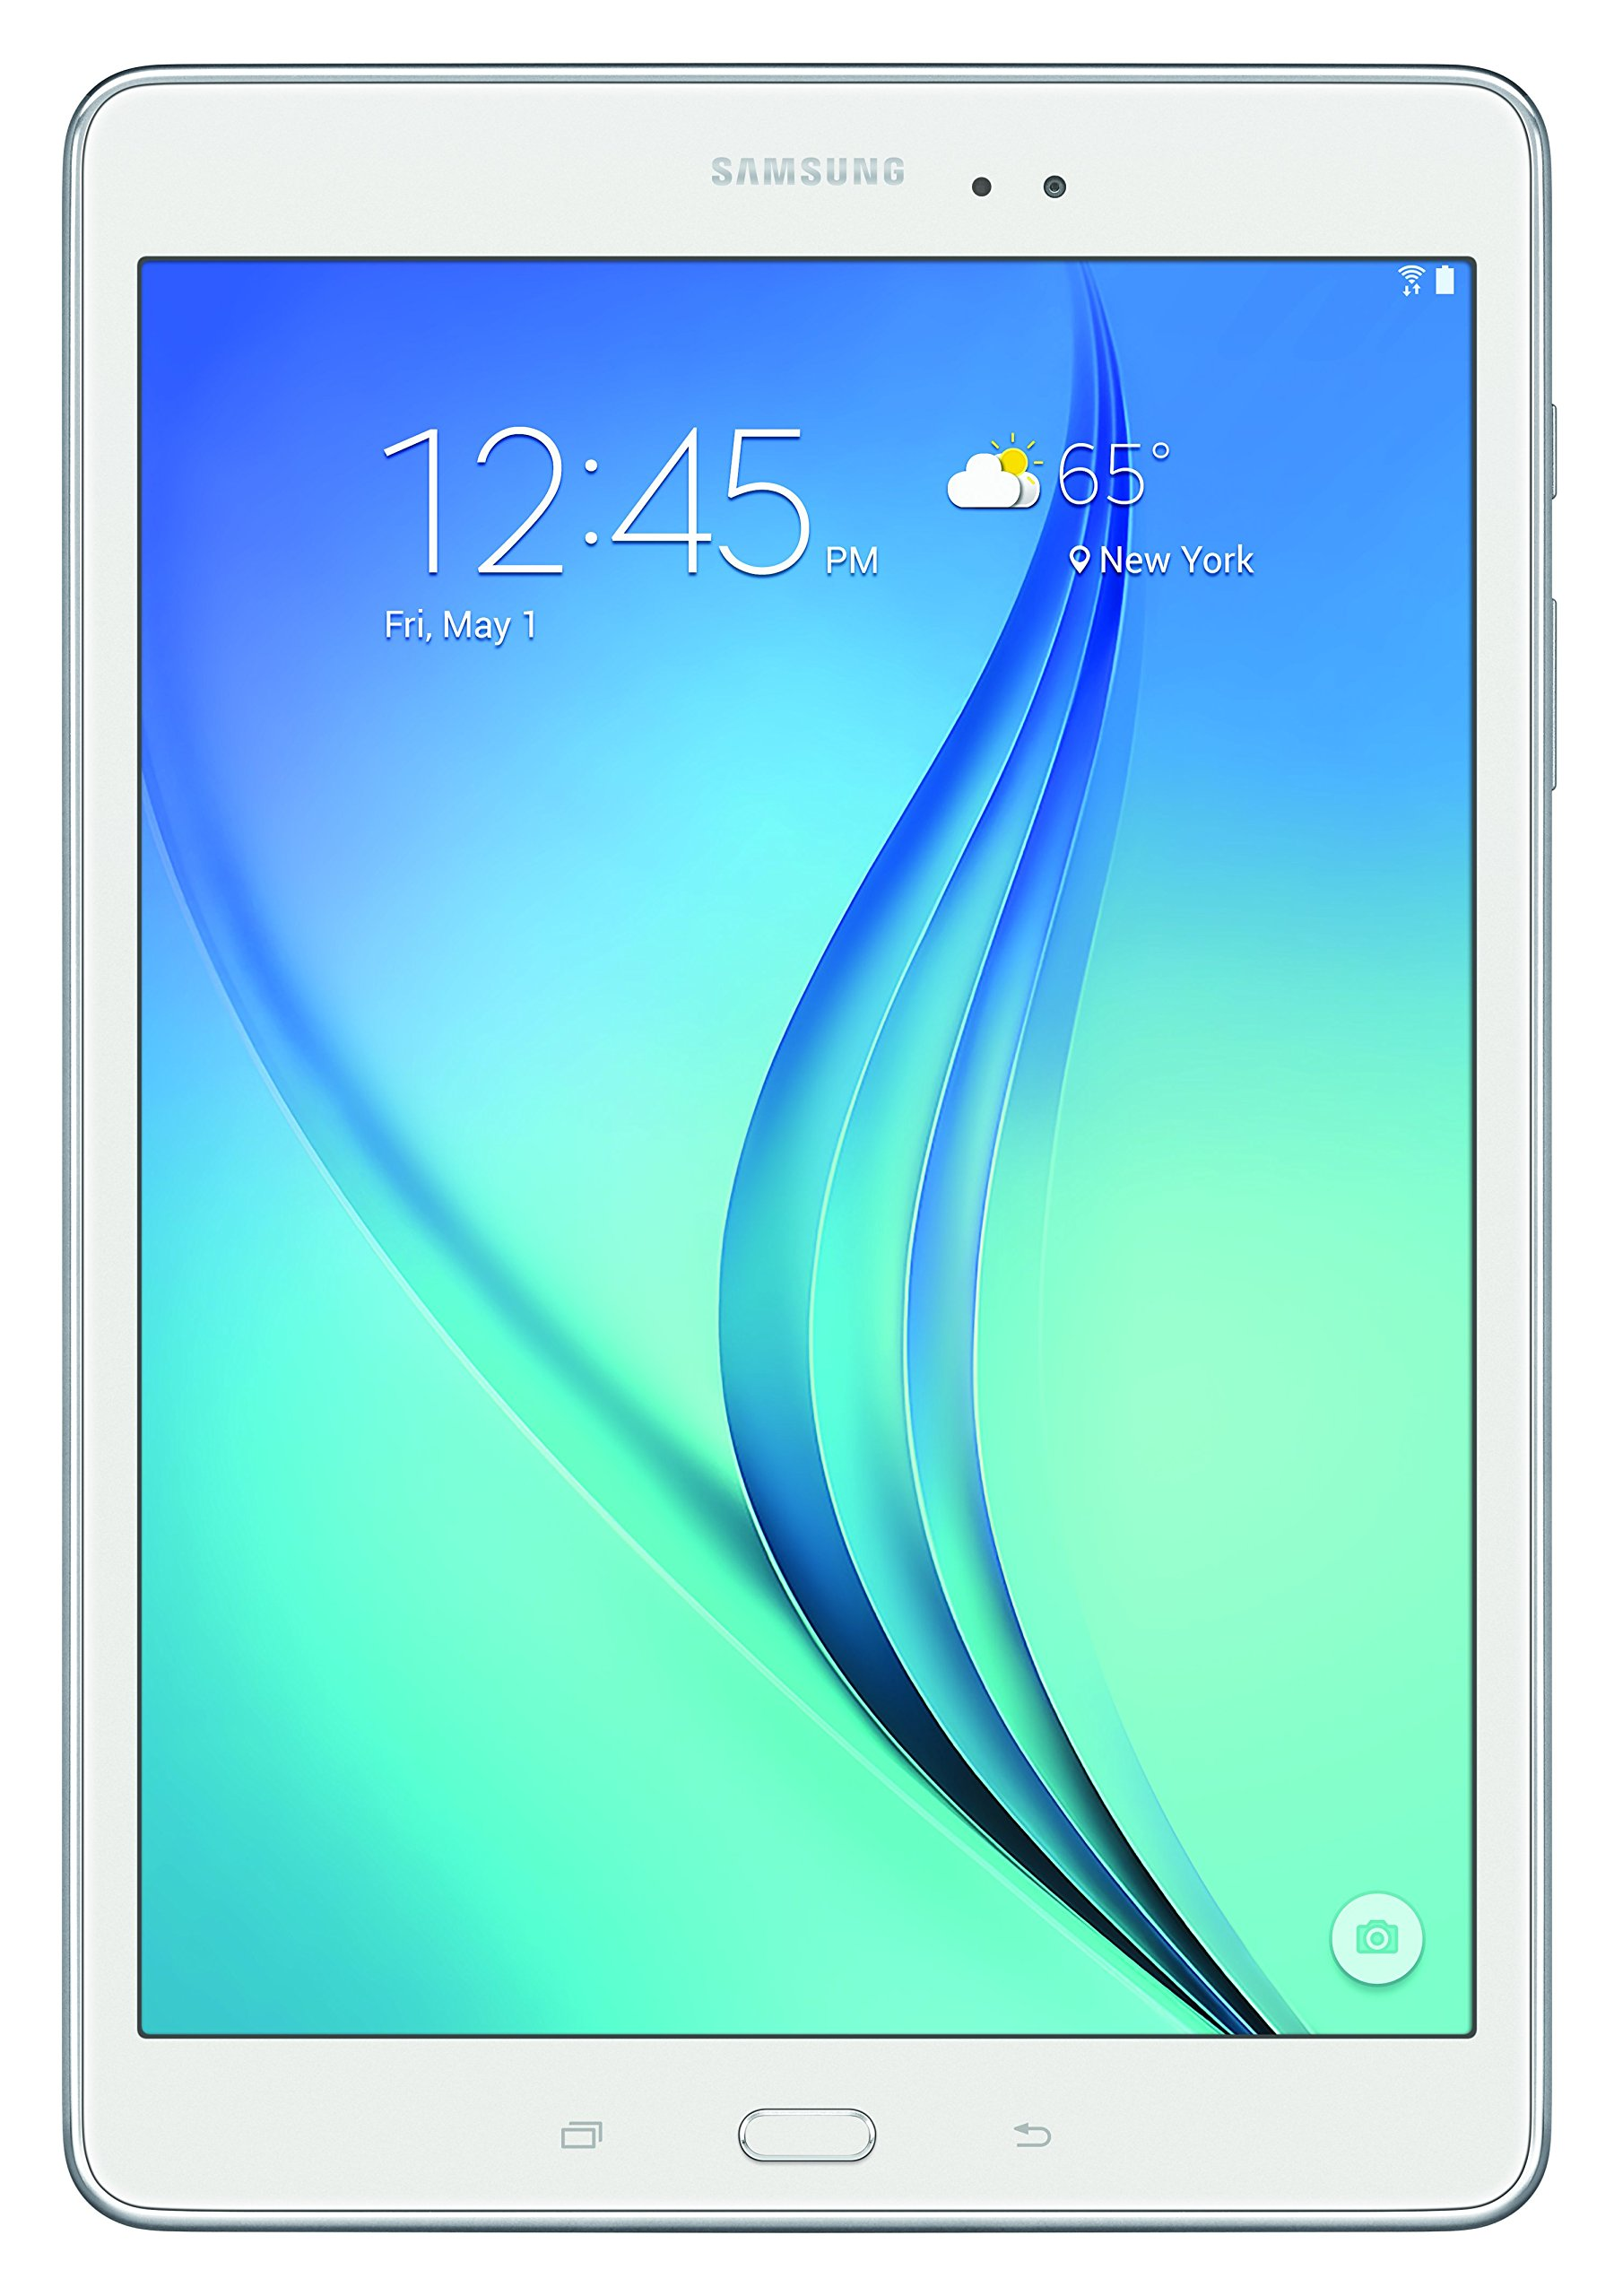 Galaxy Tab 9.7 Galaxy Tab A 9 7in 16gb White Open Box B Stock Sku No Returns